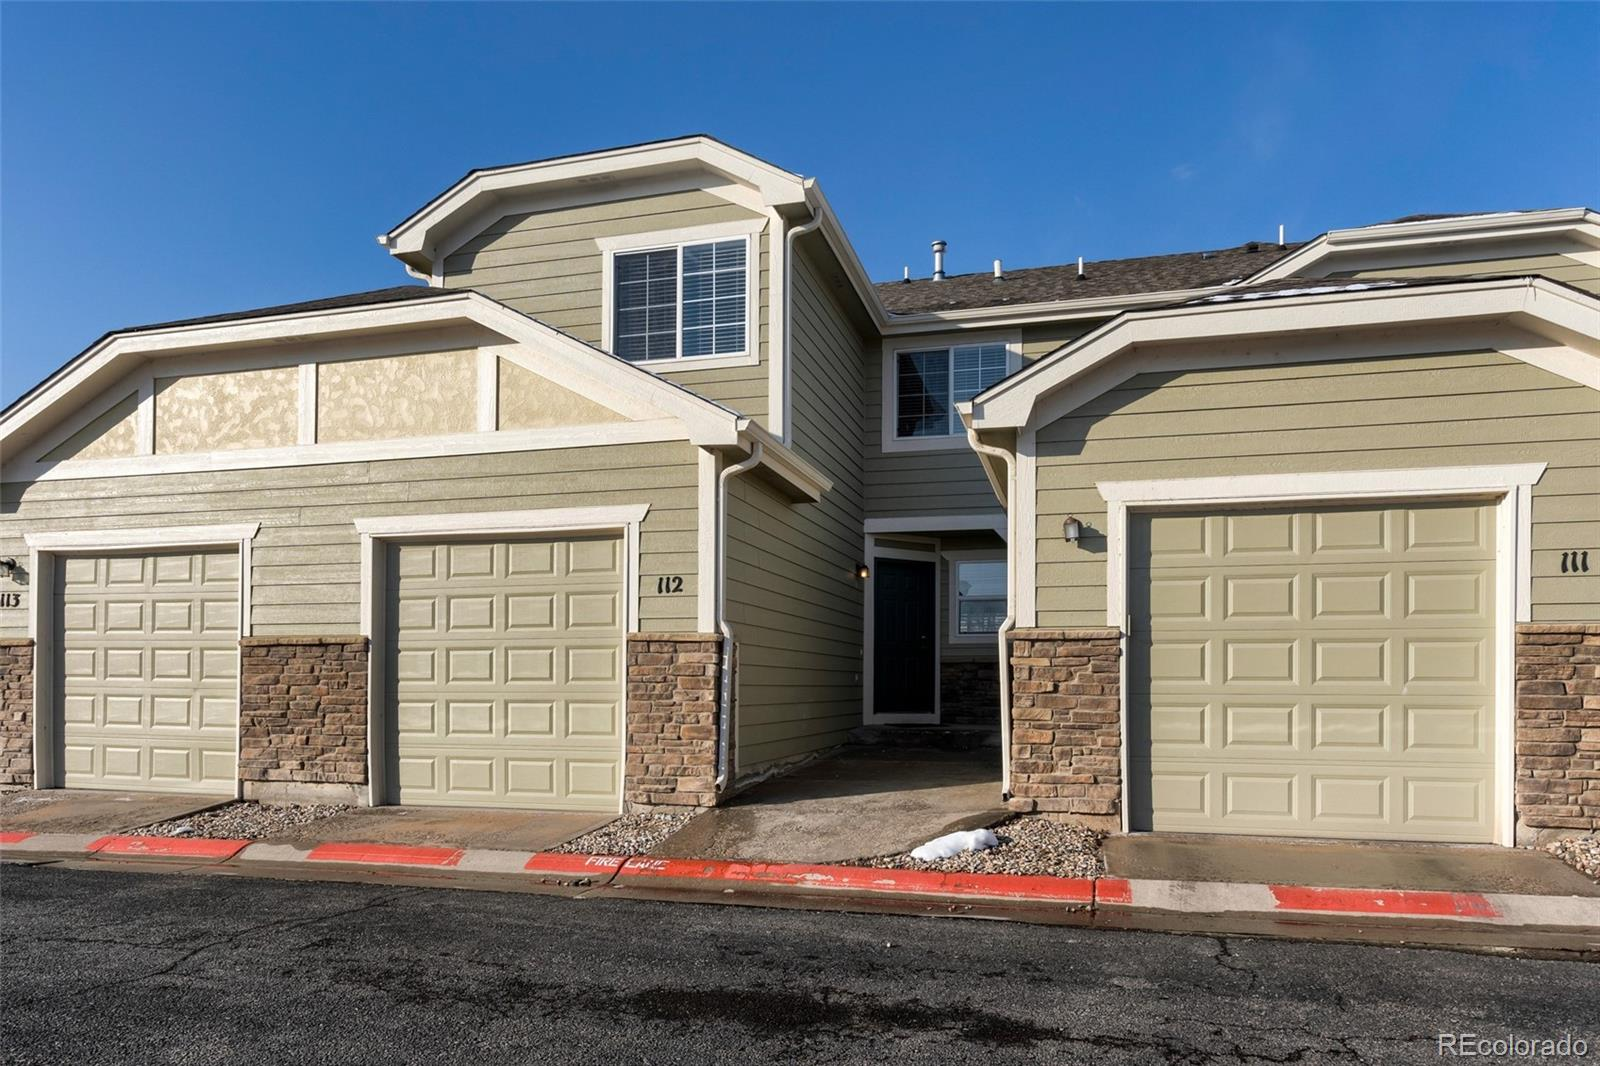 MLS# 4315489 - 2 - 1020 Andrews Peak Drive #D112, Fort Collins, CO 80521